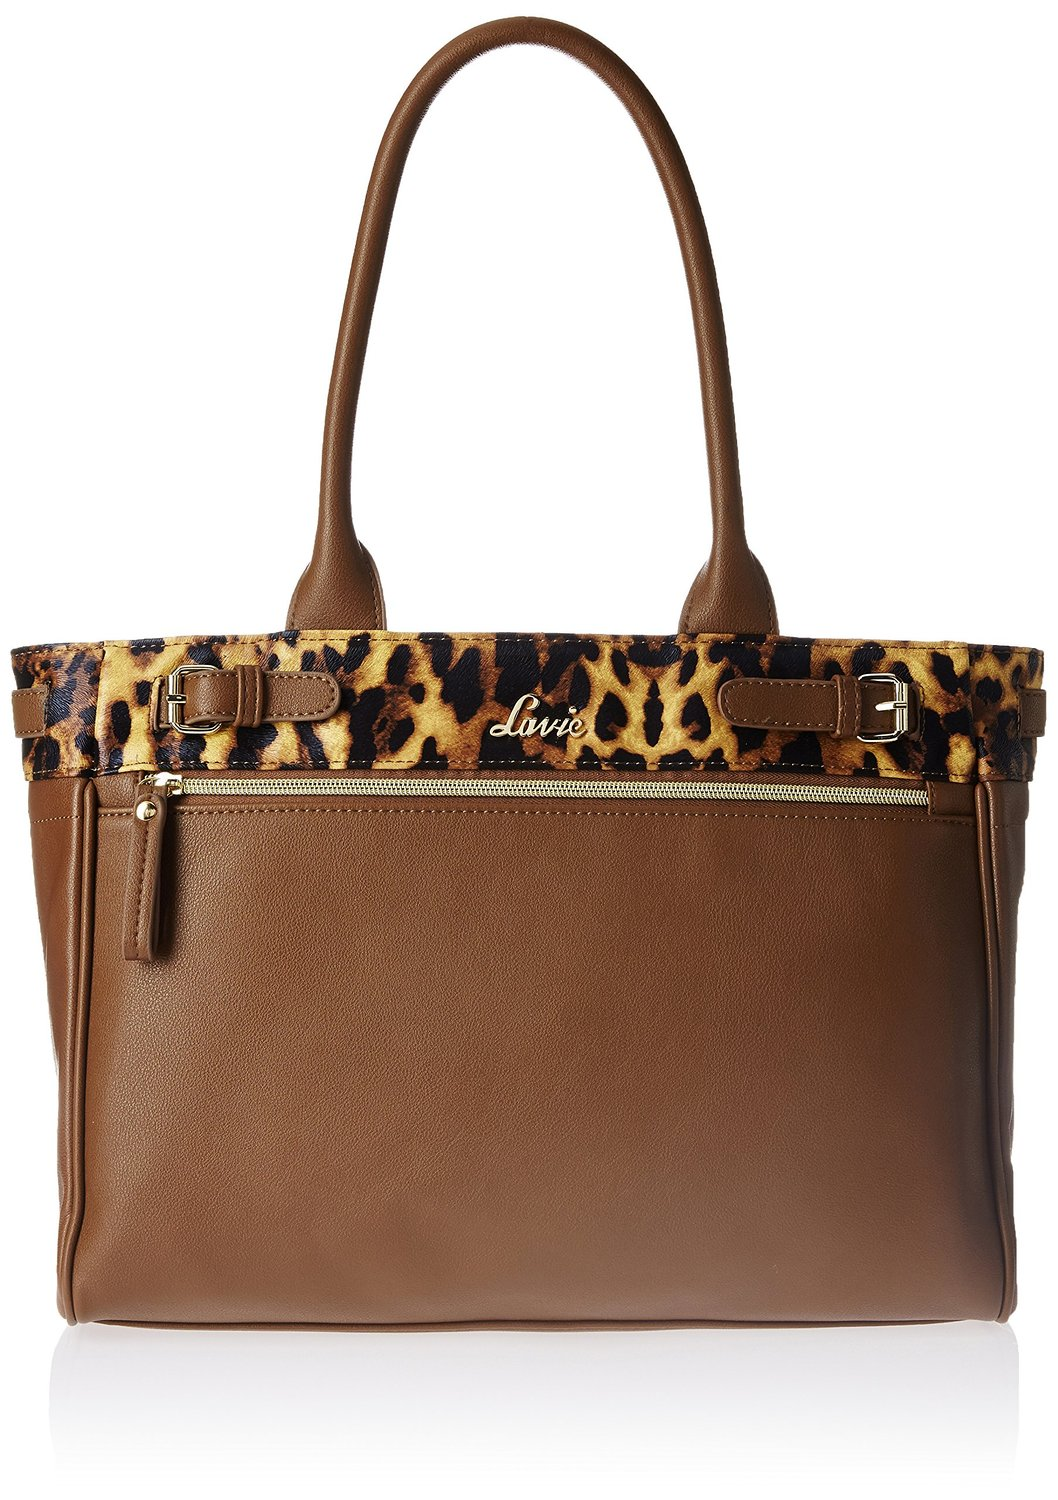 Brown Lavie Women's Tote Bag